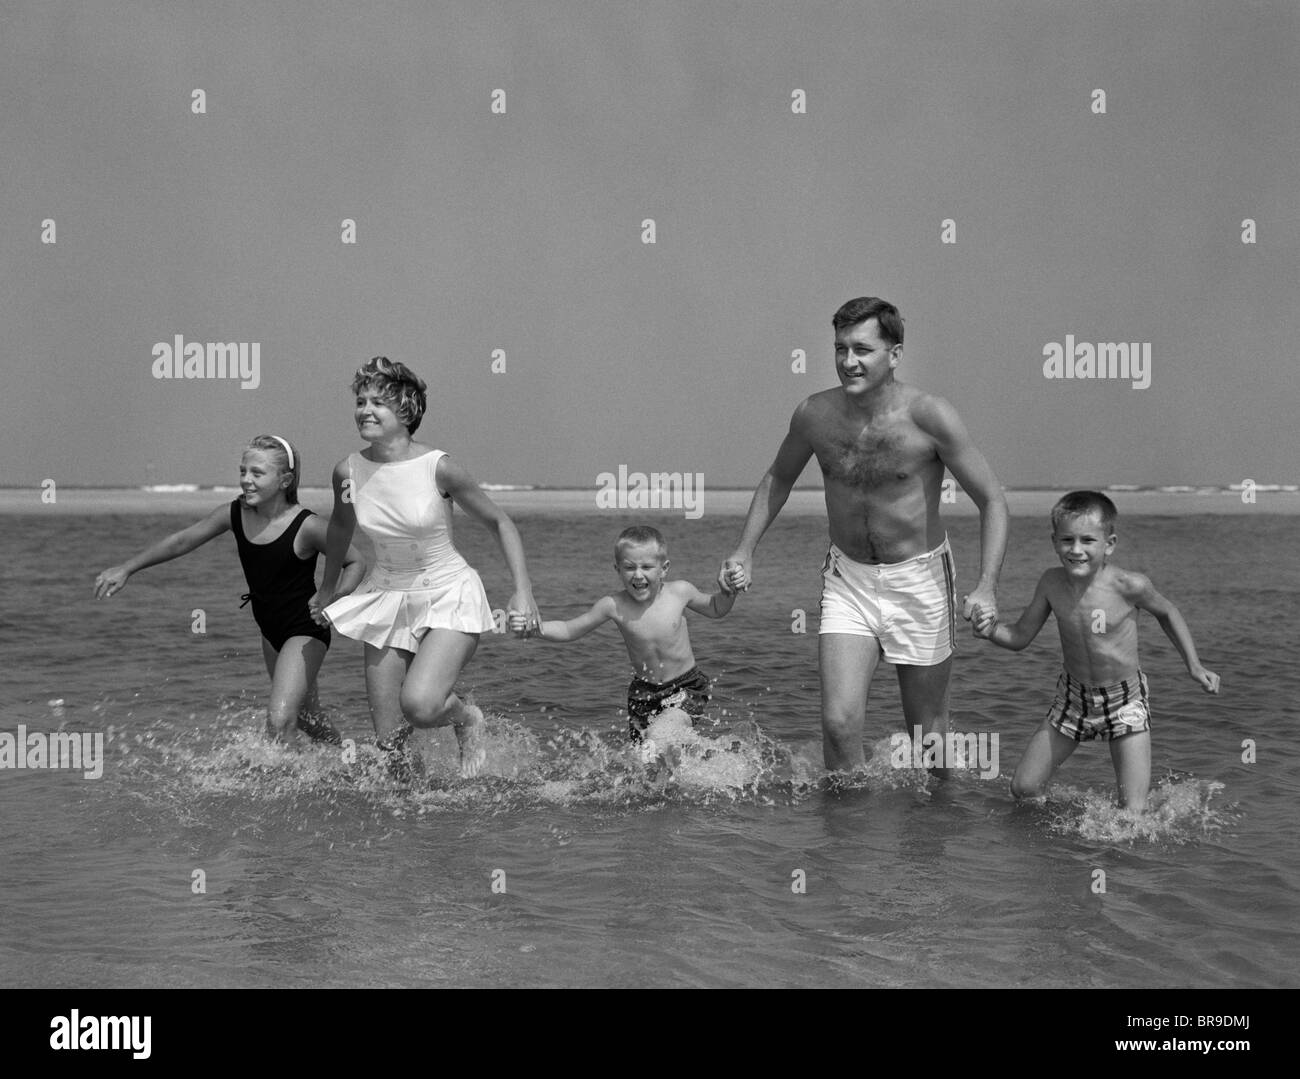 1960s FAMILY HOLDING HANDS RUNNING IN WATER AT OCEAN BEACH - Stock Image